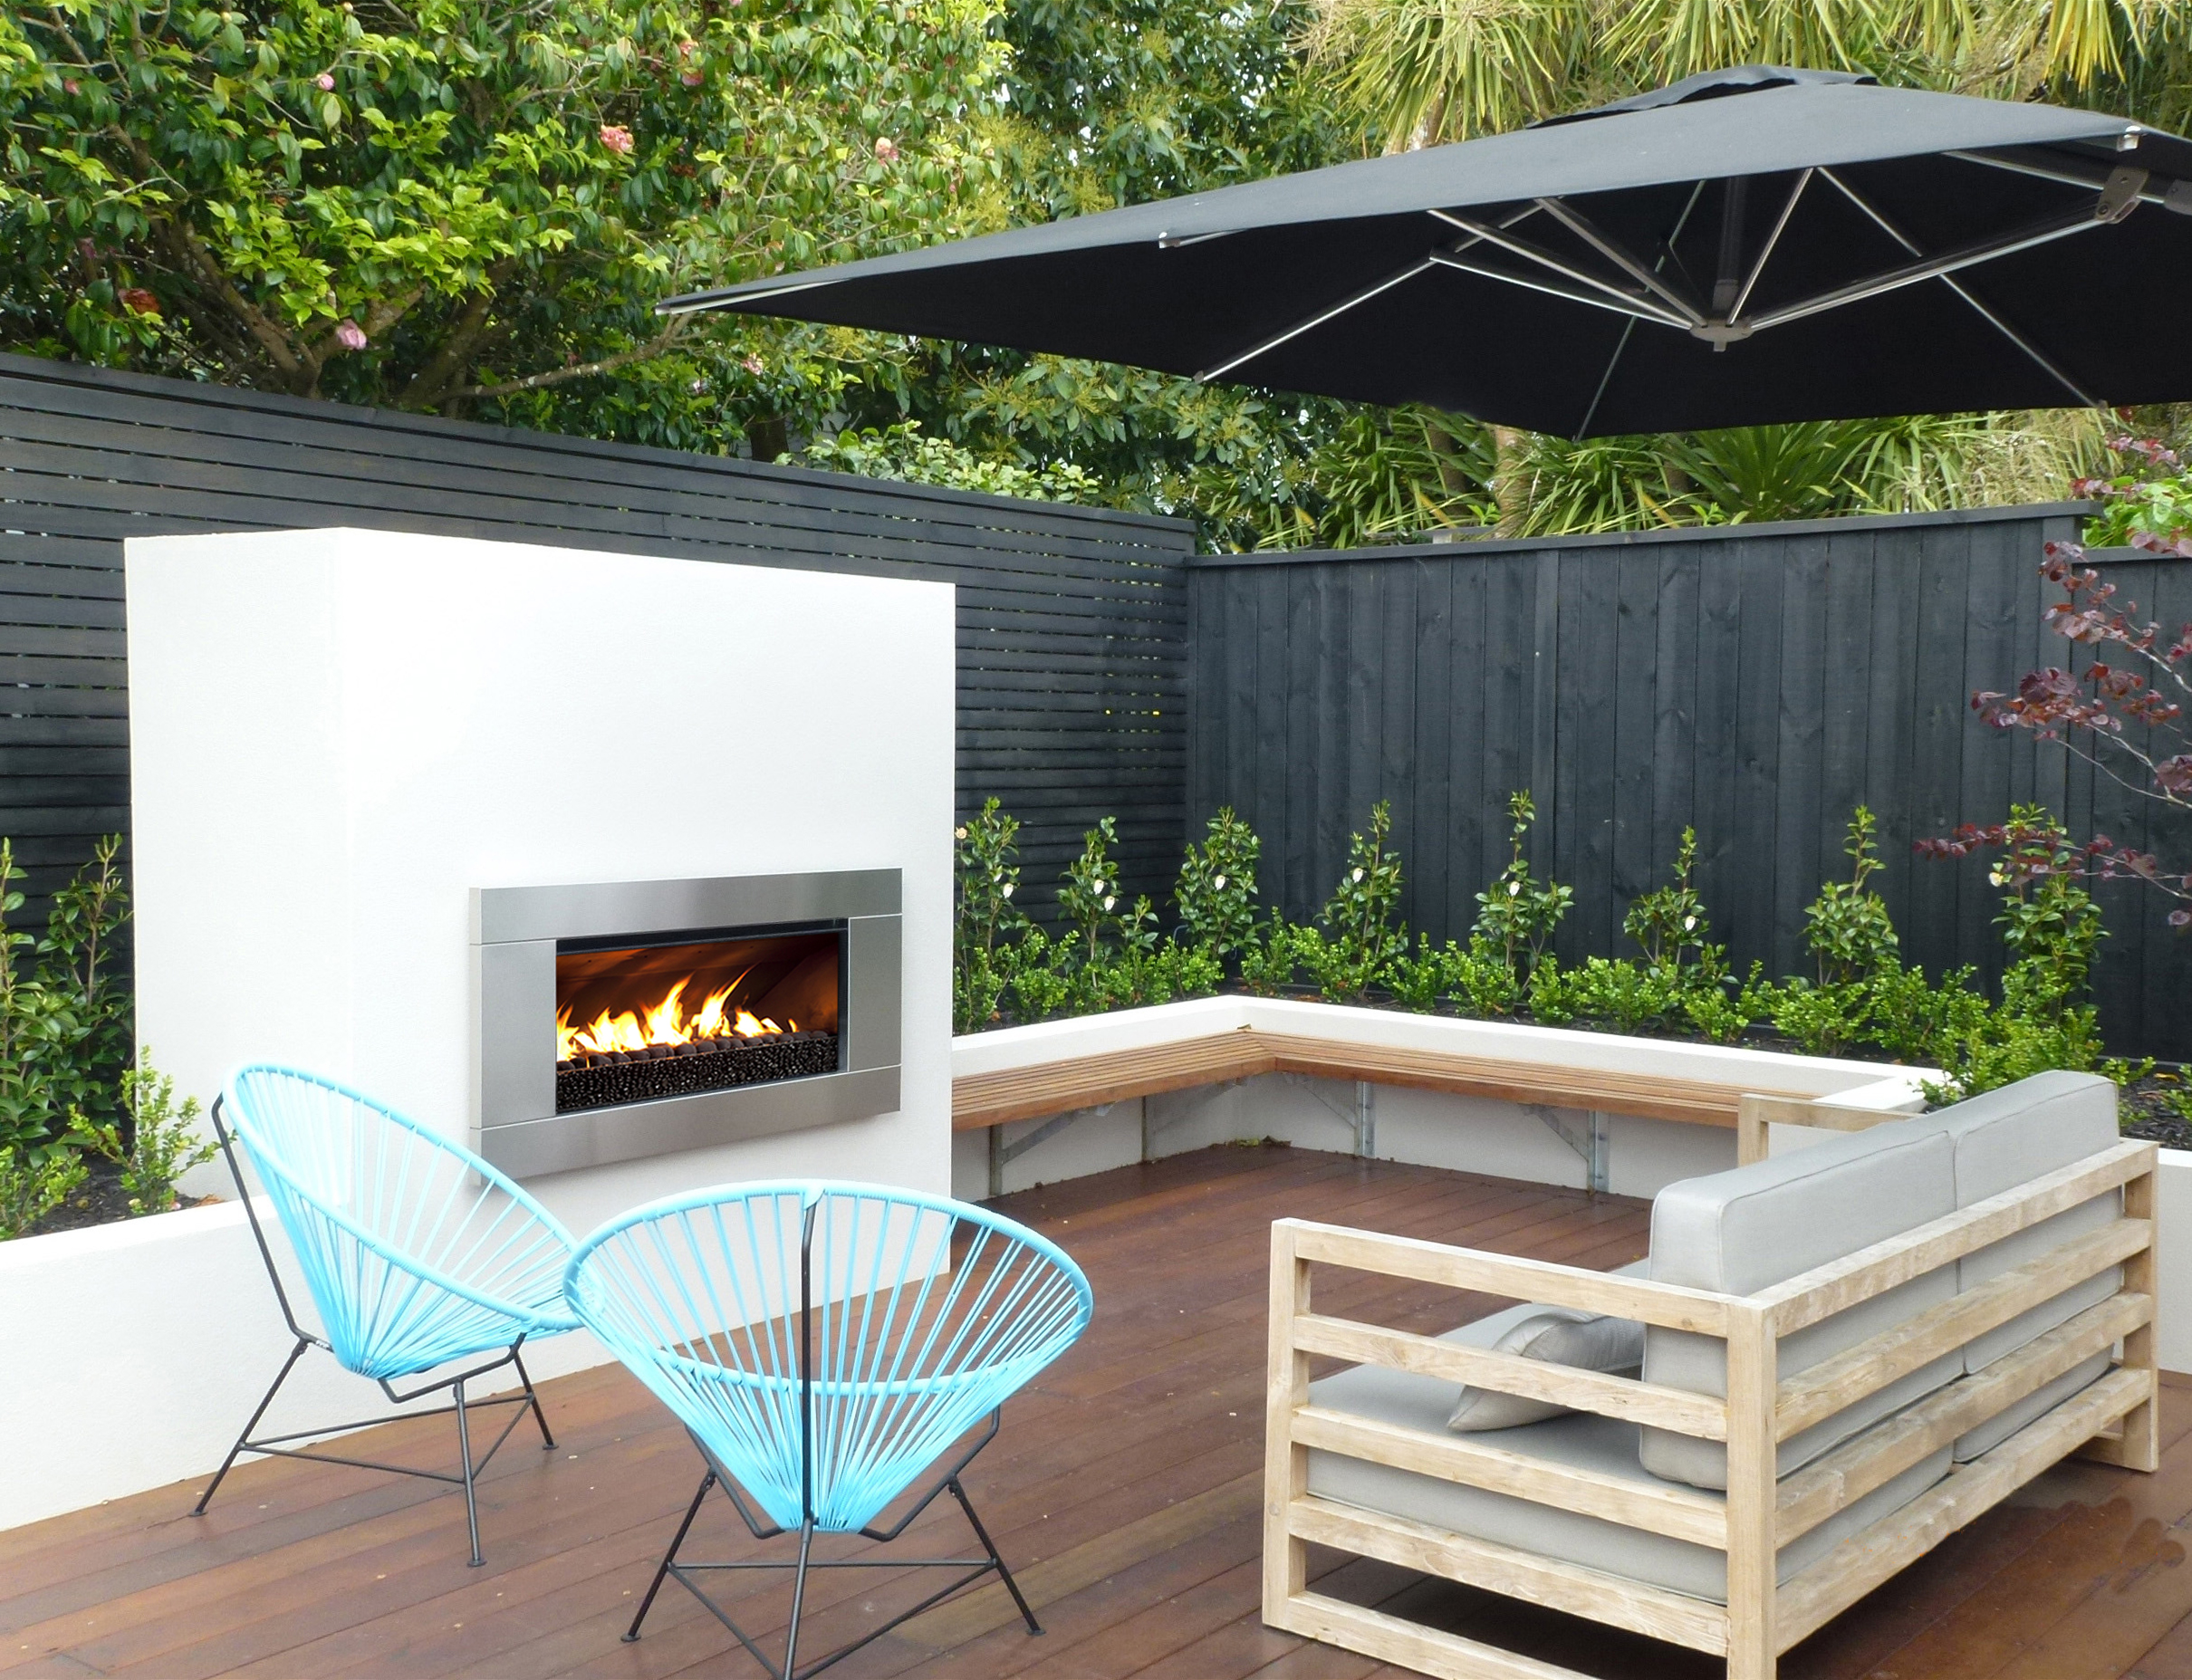 Outdoor Fires: How to Choose Between Gas and Wood - EBOSS on Outdoor Gas Fireplace For Deck id=98811